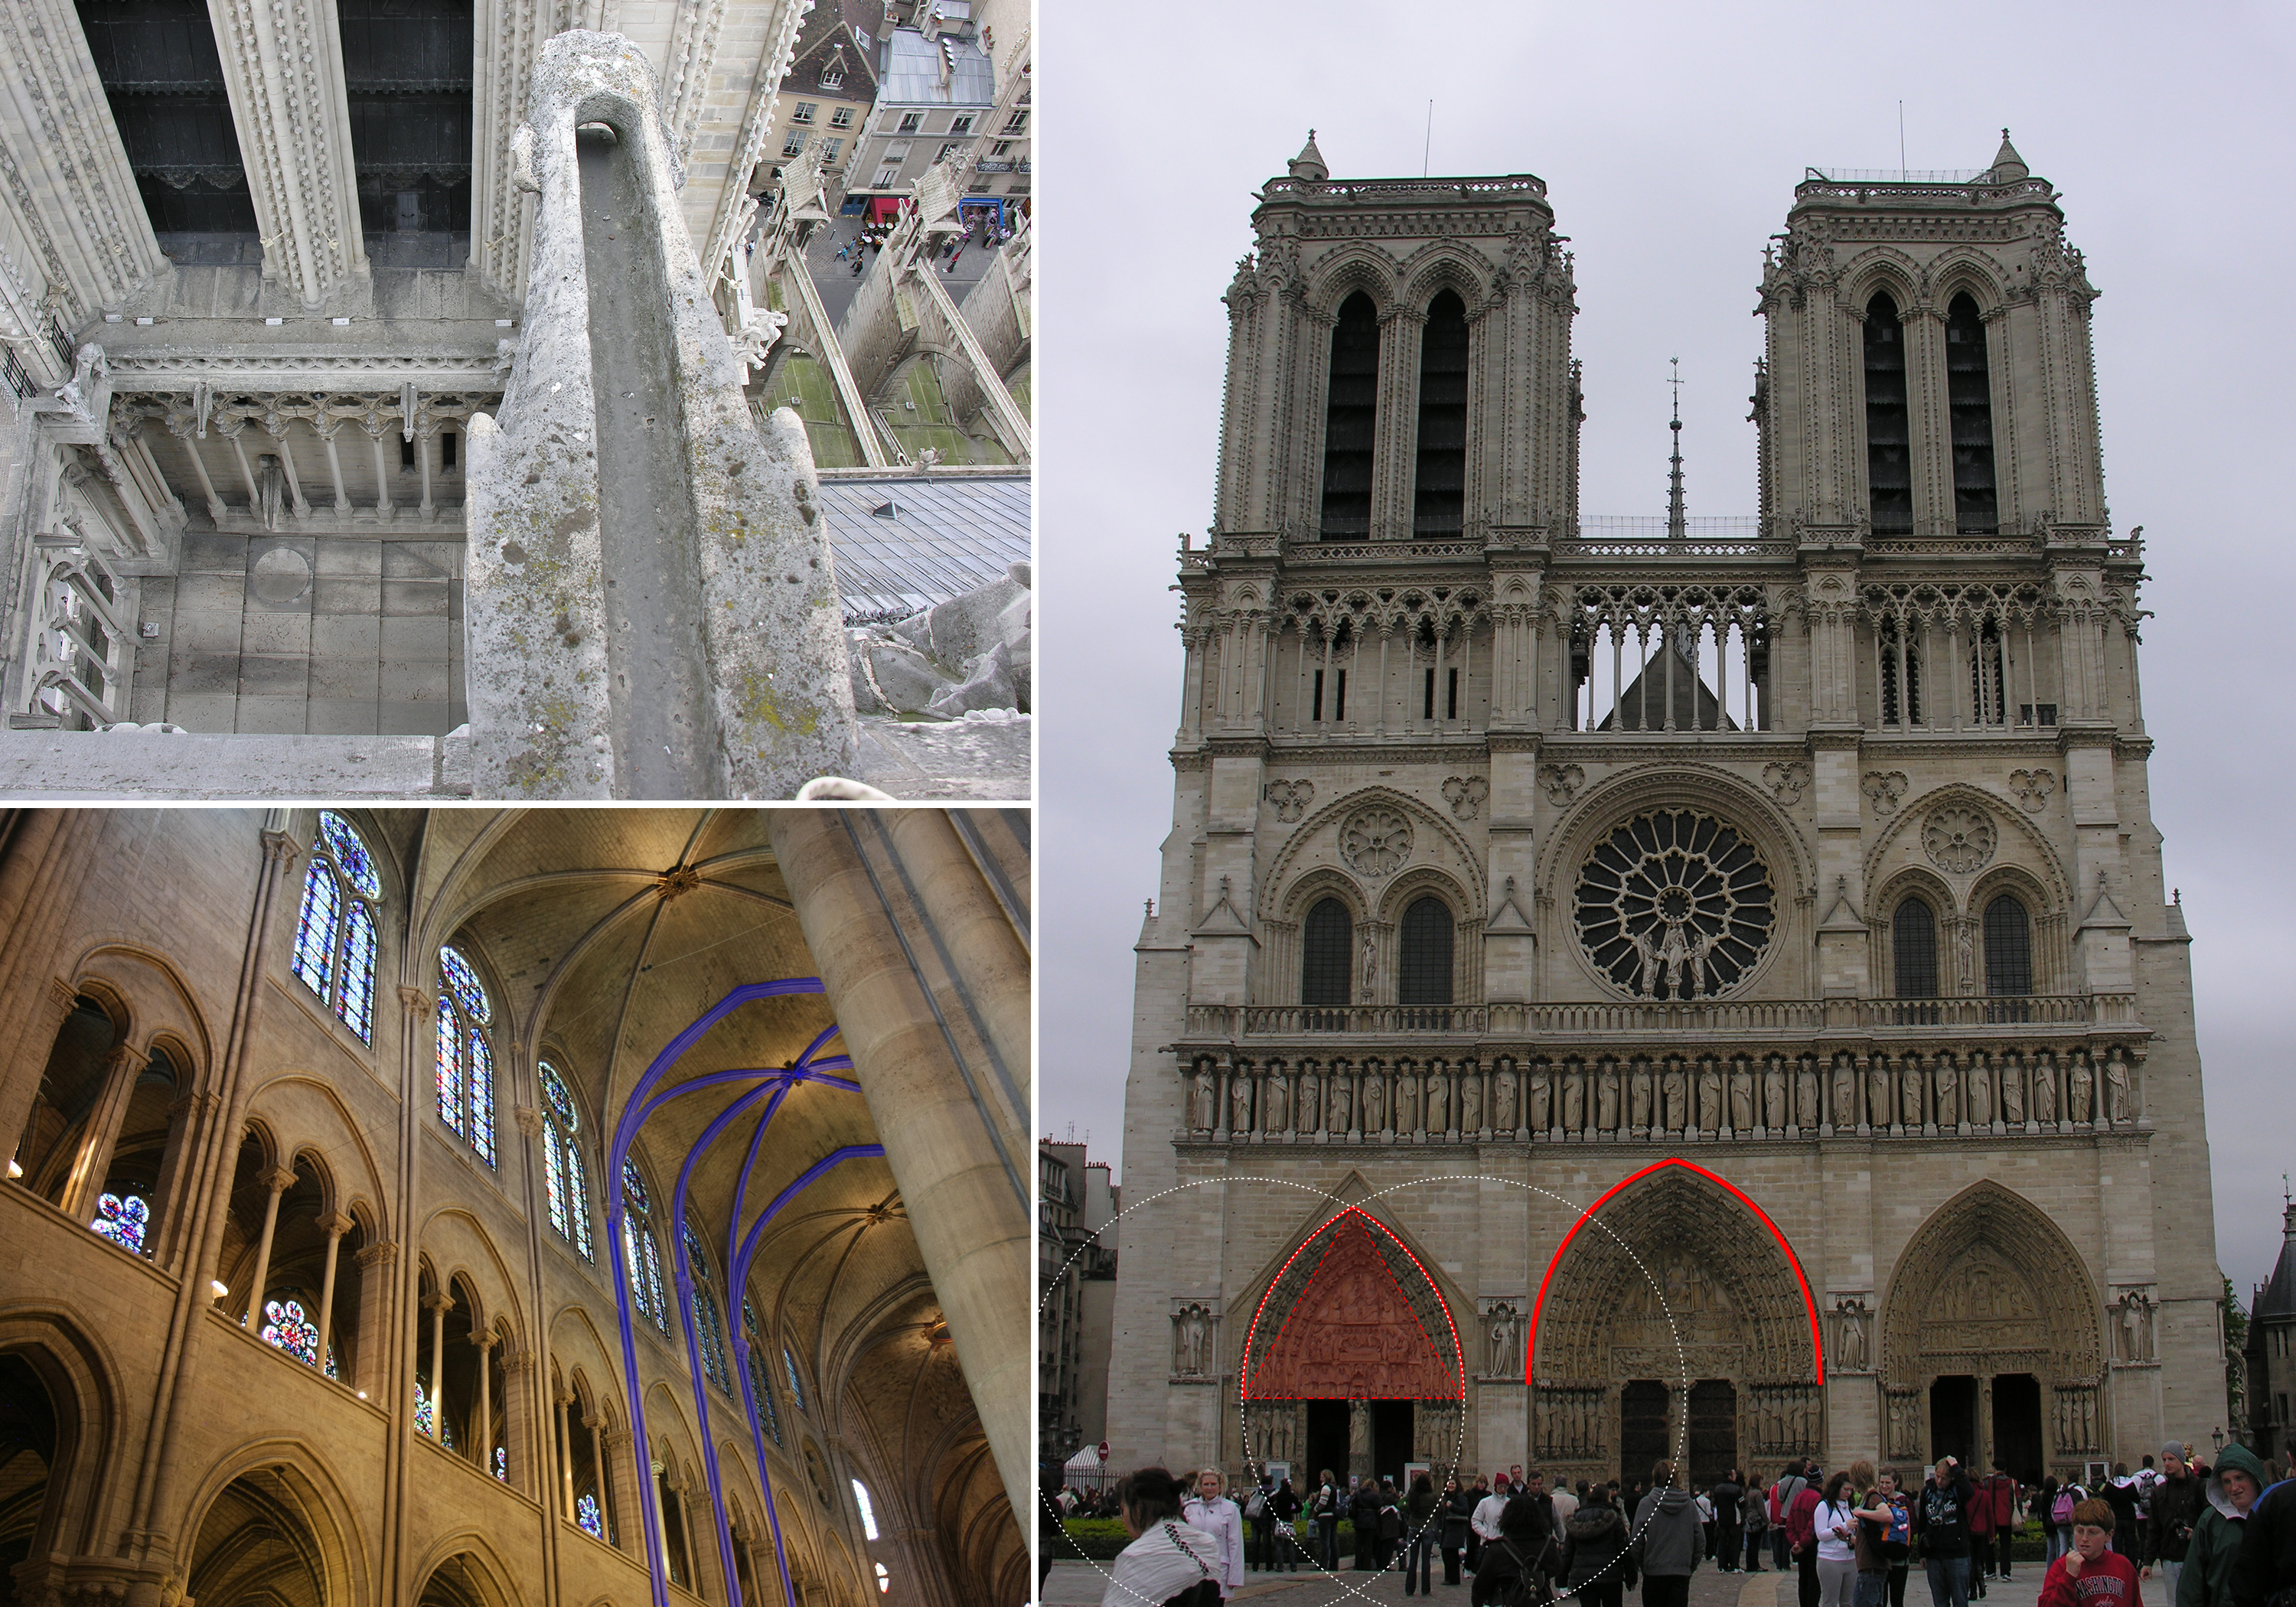 rib vaults and other architectural details at Notre-Dame